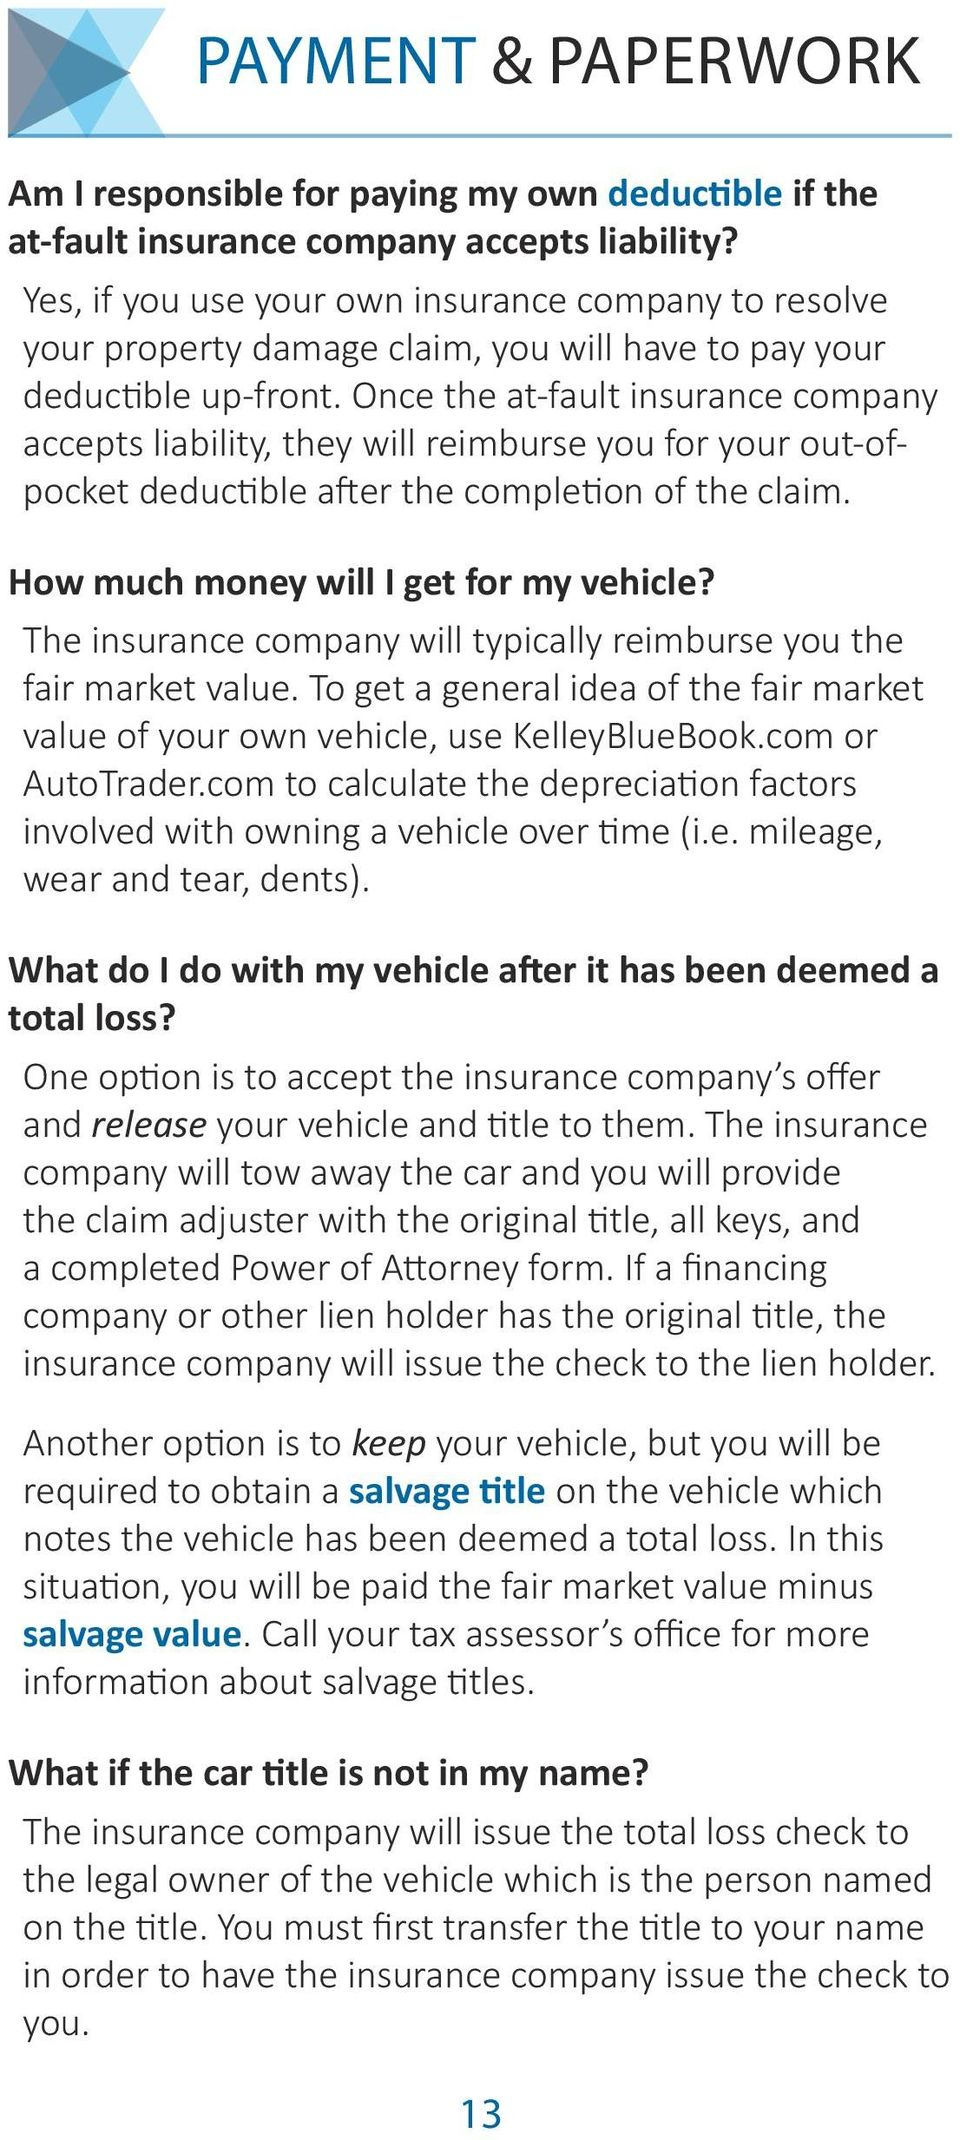 Once the at-fault insurance company accepts liability, they will reimburse you for your out-ofpocket deductible after the completion of the claim. How much money will I get for my vehicle?